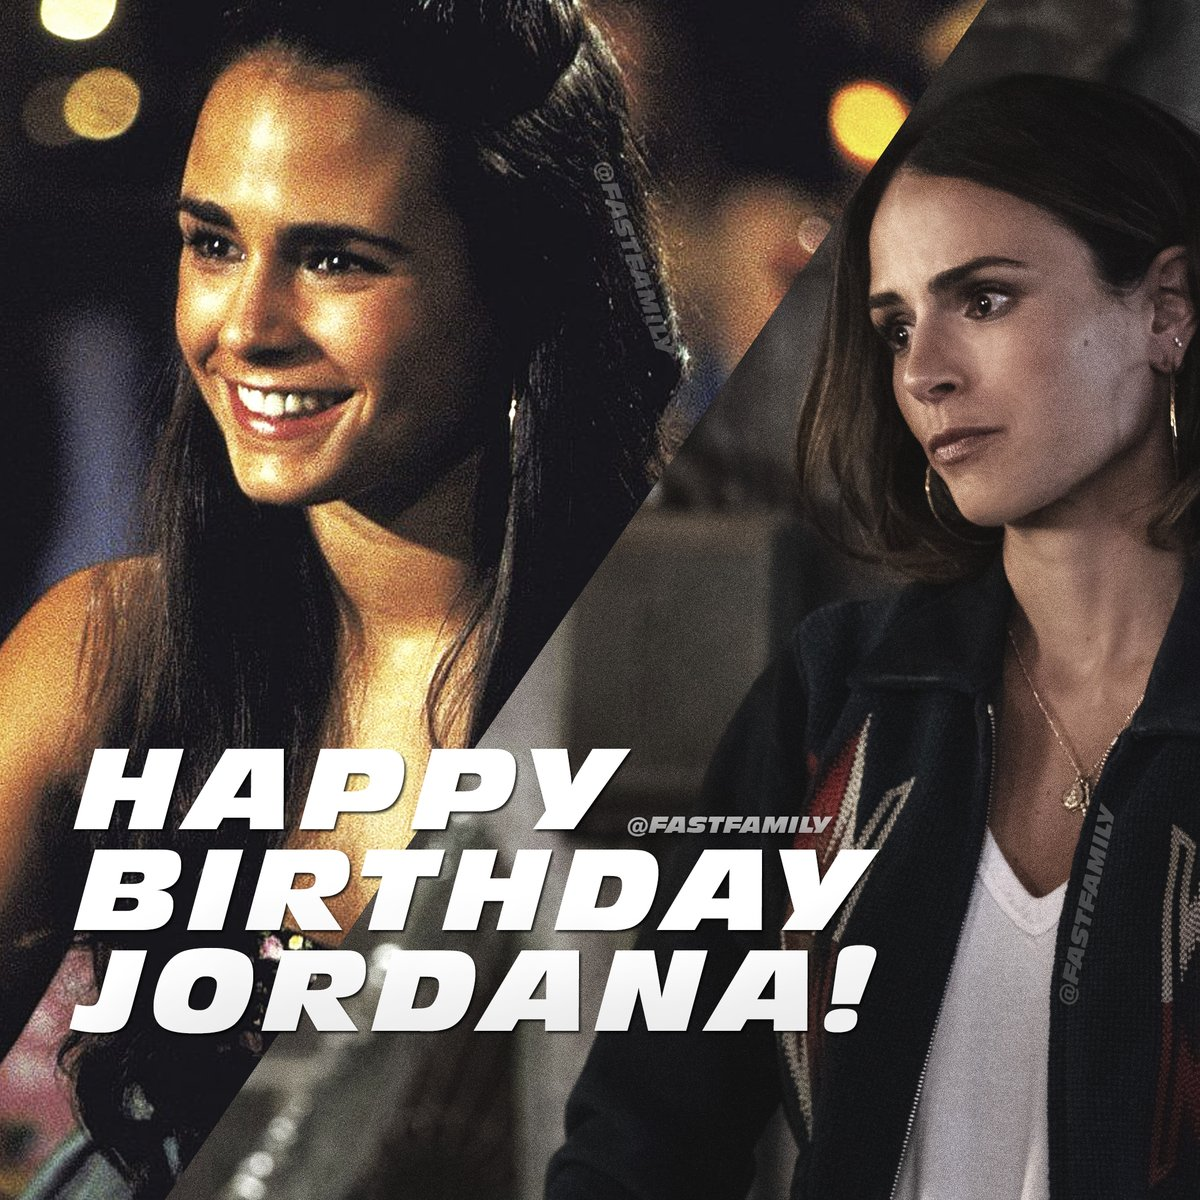 Happy Birthday to our beloved @JordanaBrewster!  See you soon in #F9 alongside the #FastFamily. @TheFastSaga #FAST9 https://t.co/jgjs5DlU0k